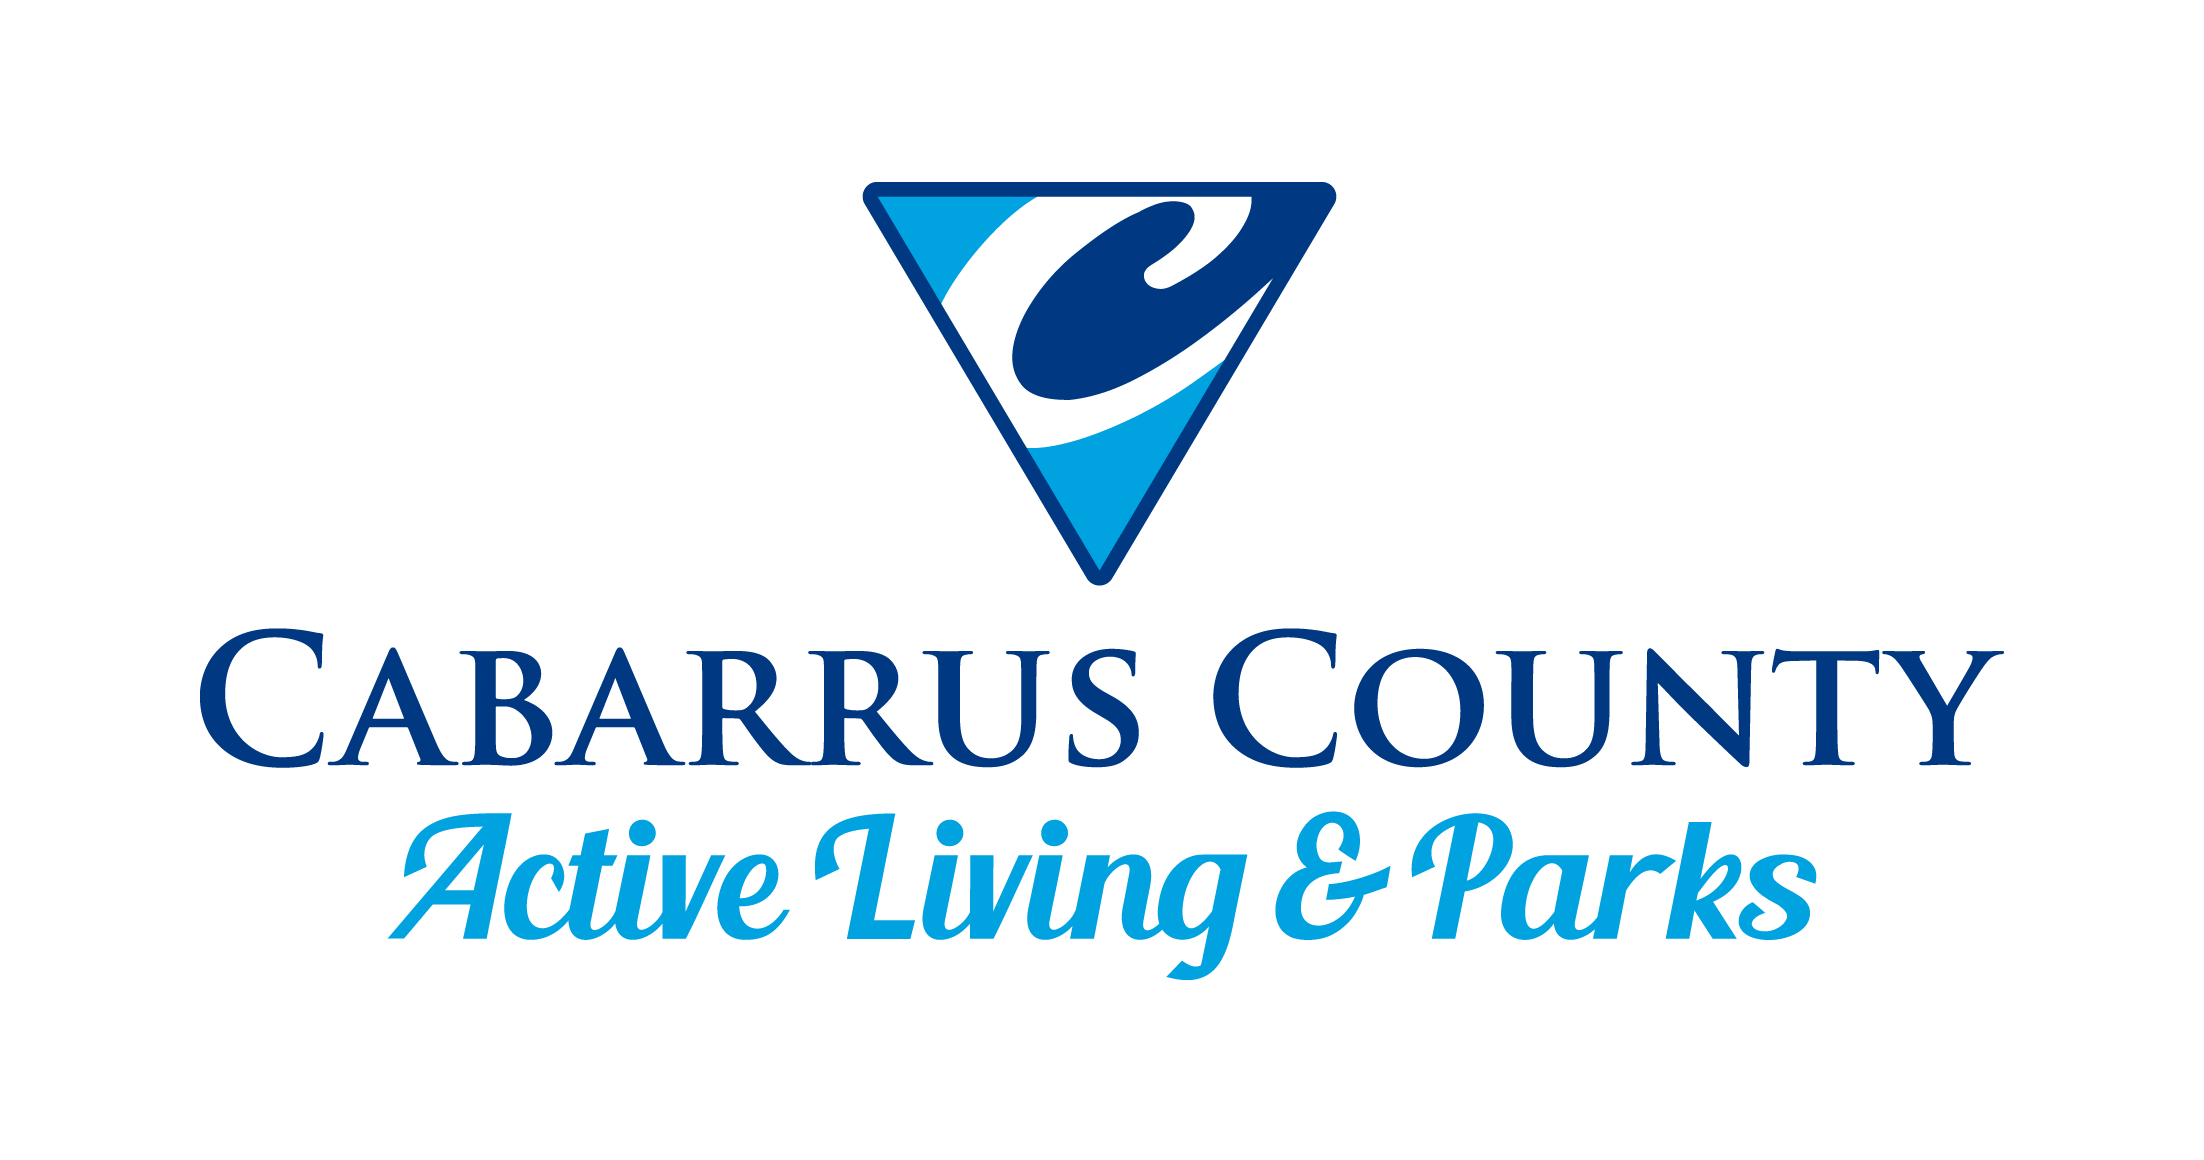 Cabarrus County Active Living & Parks